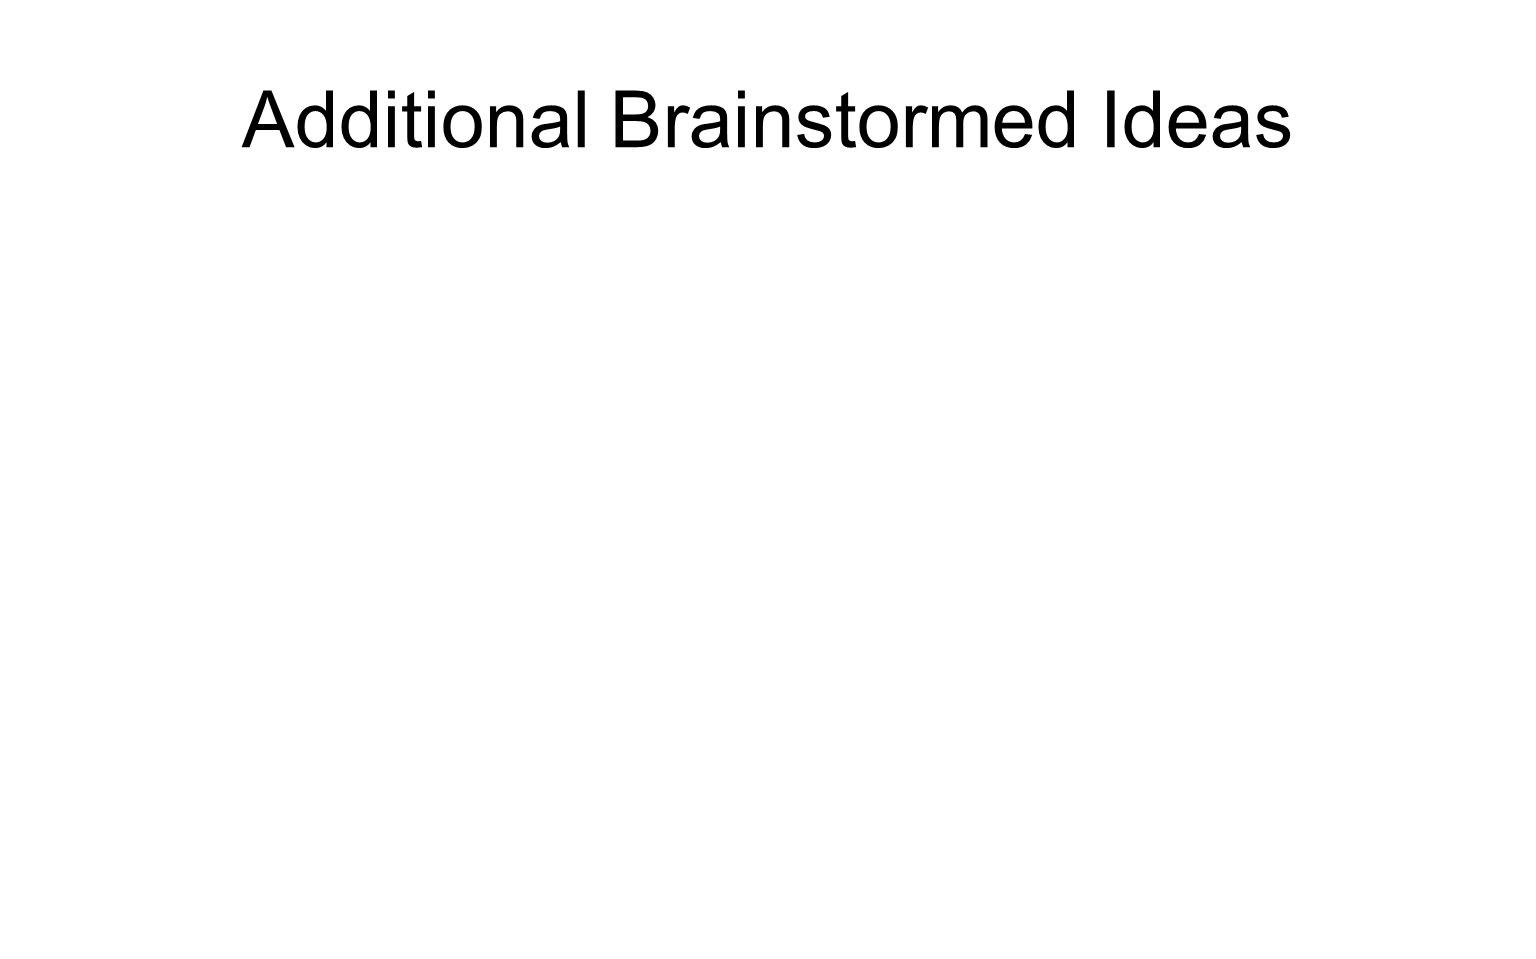 Additional Brainstormed Ideas